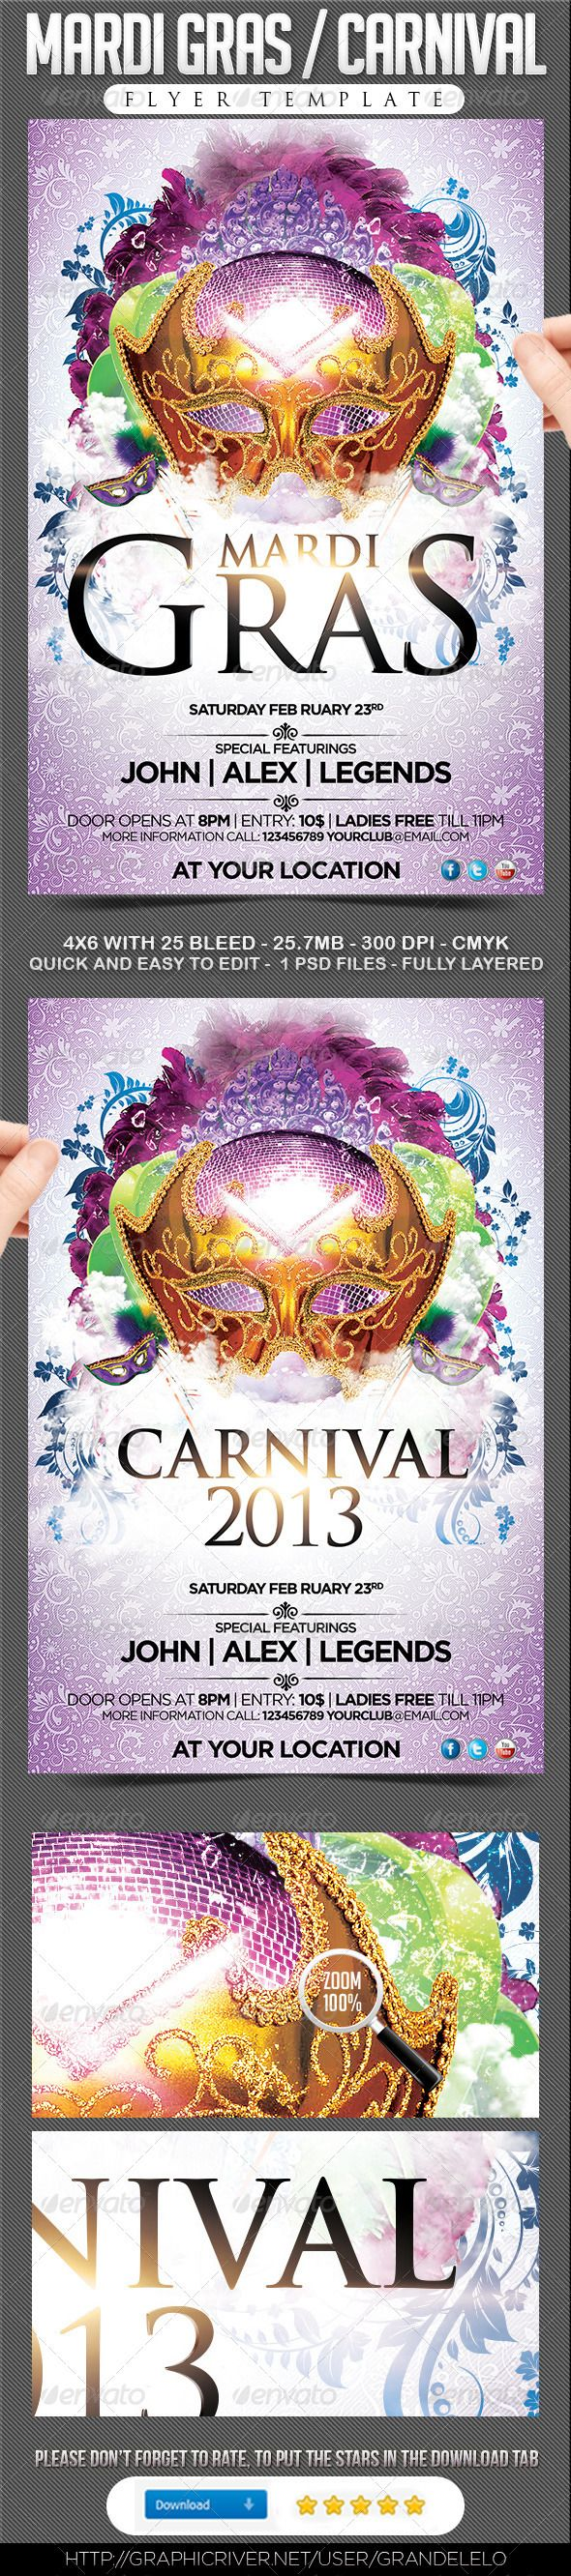 mardi gras carnival flyer summer nightclub and mask party buy mardi gras carnival flyer by grandelelo on graphicriver enjoy this mardi gras carnival flyer template for the next you can change